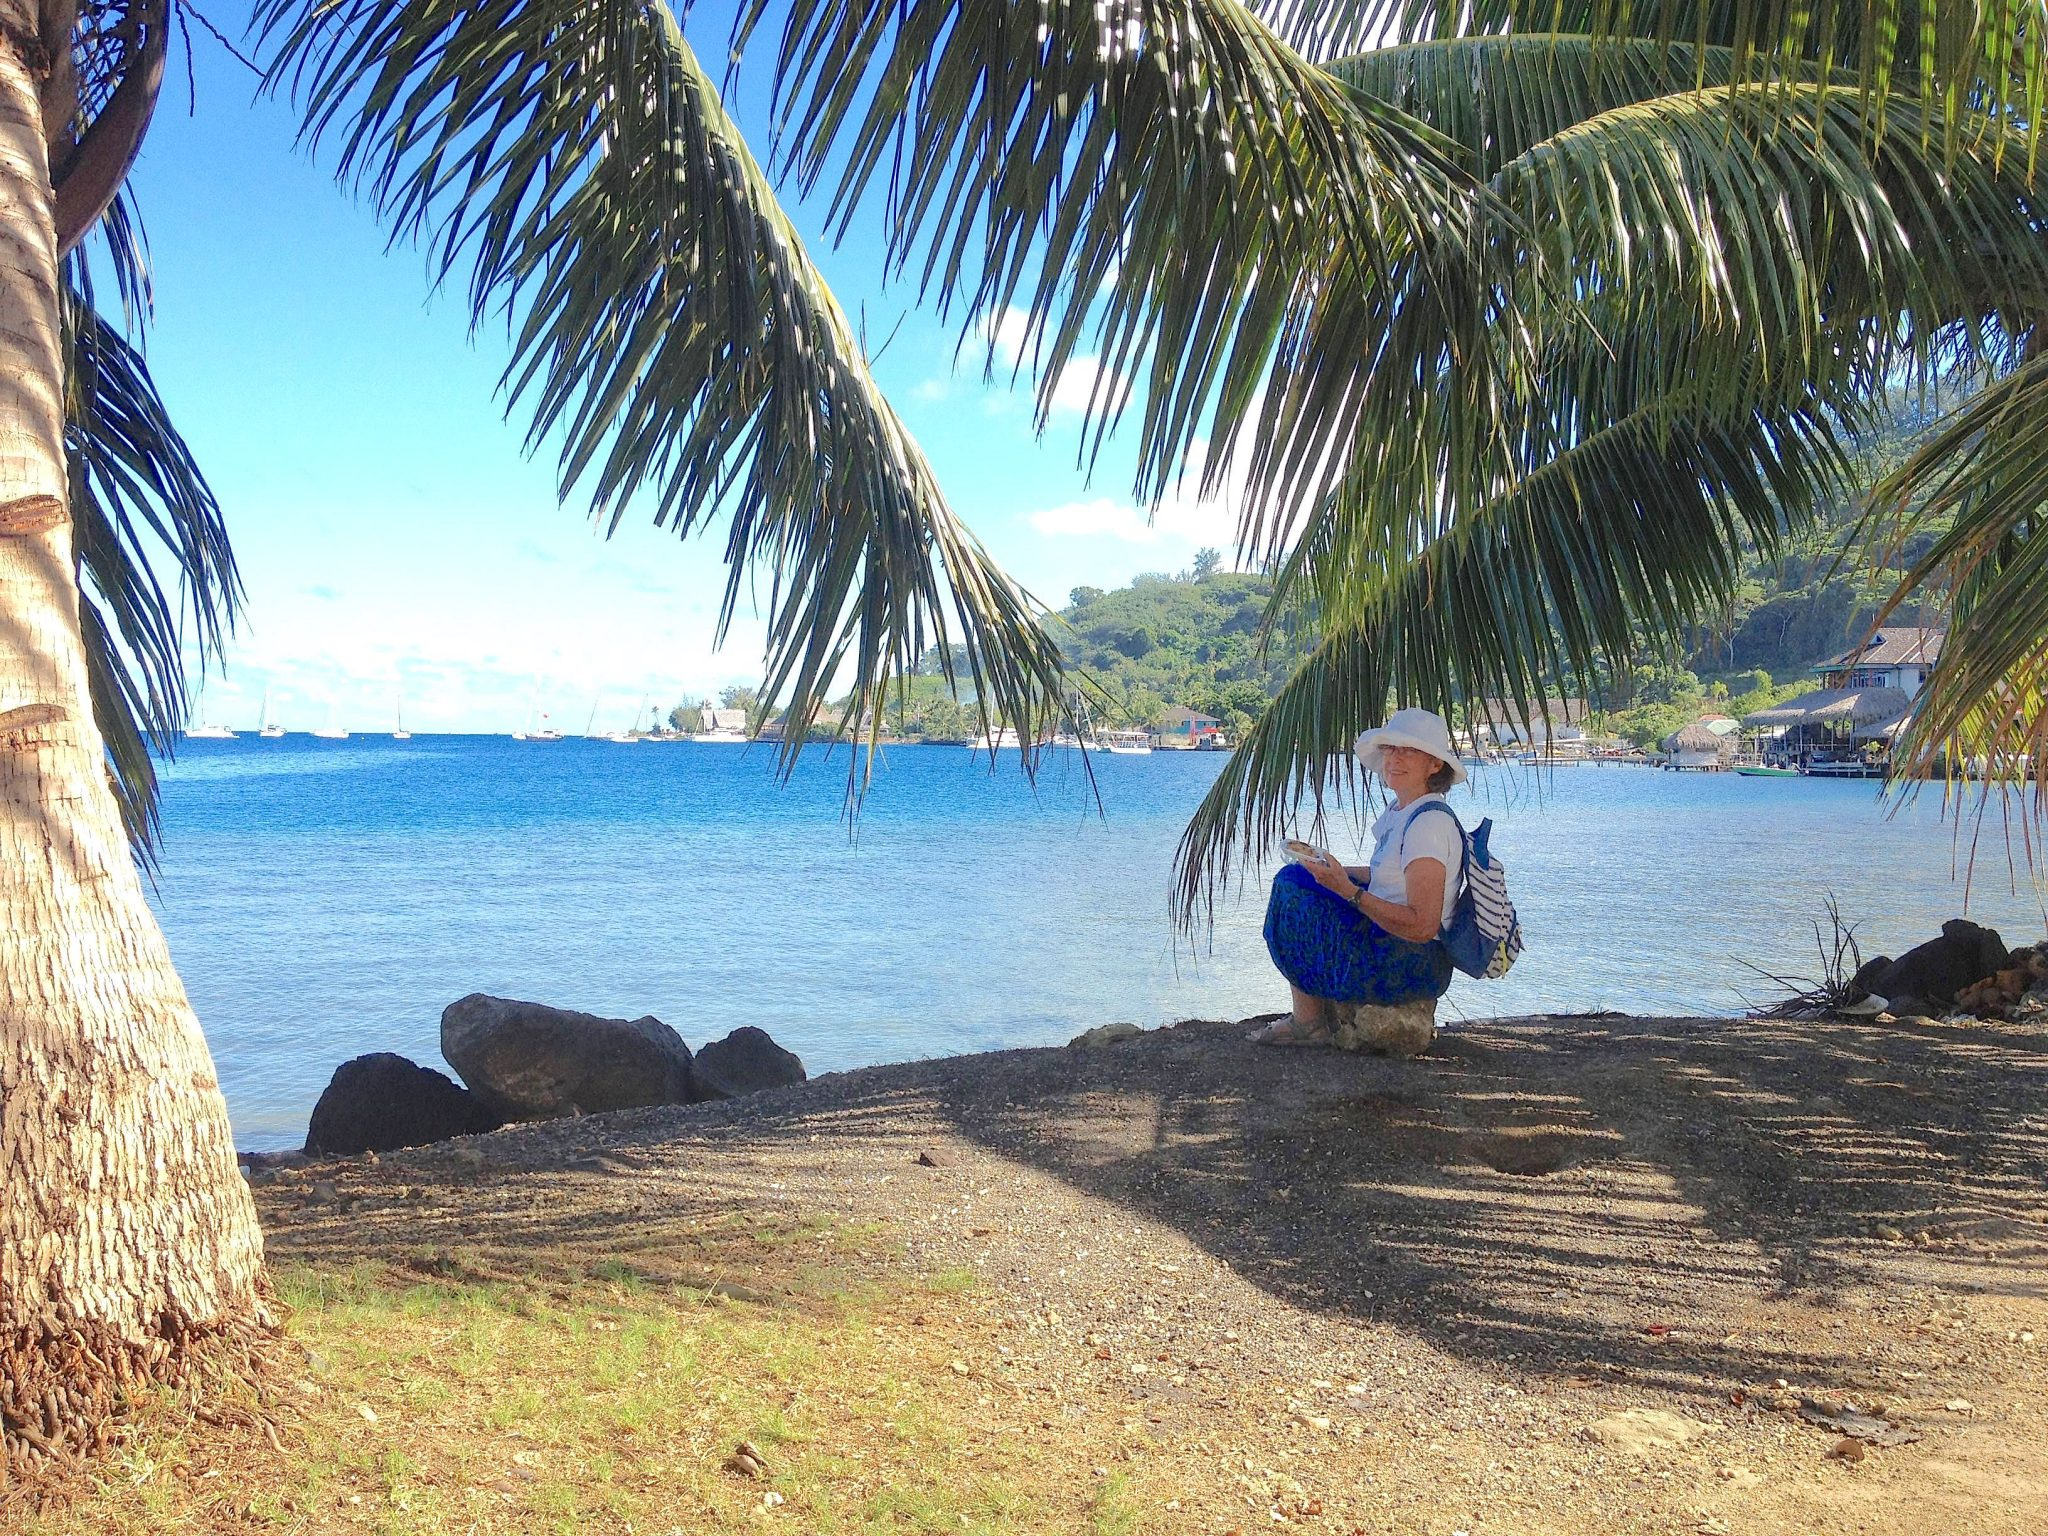 20. Anne and Jeff ate lunch under coconut trees in Bora Bora with Joyful in the distance.